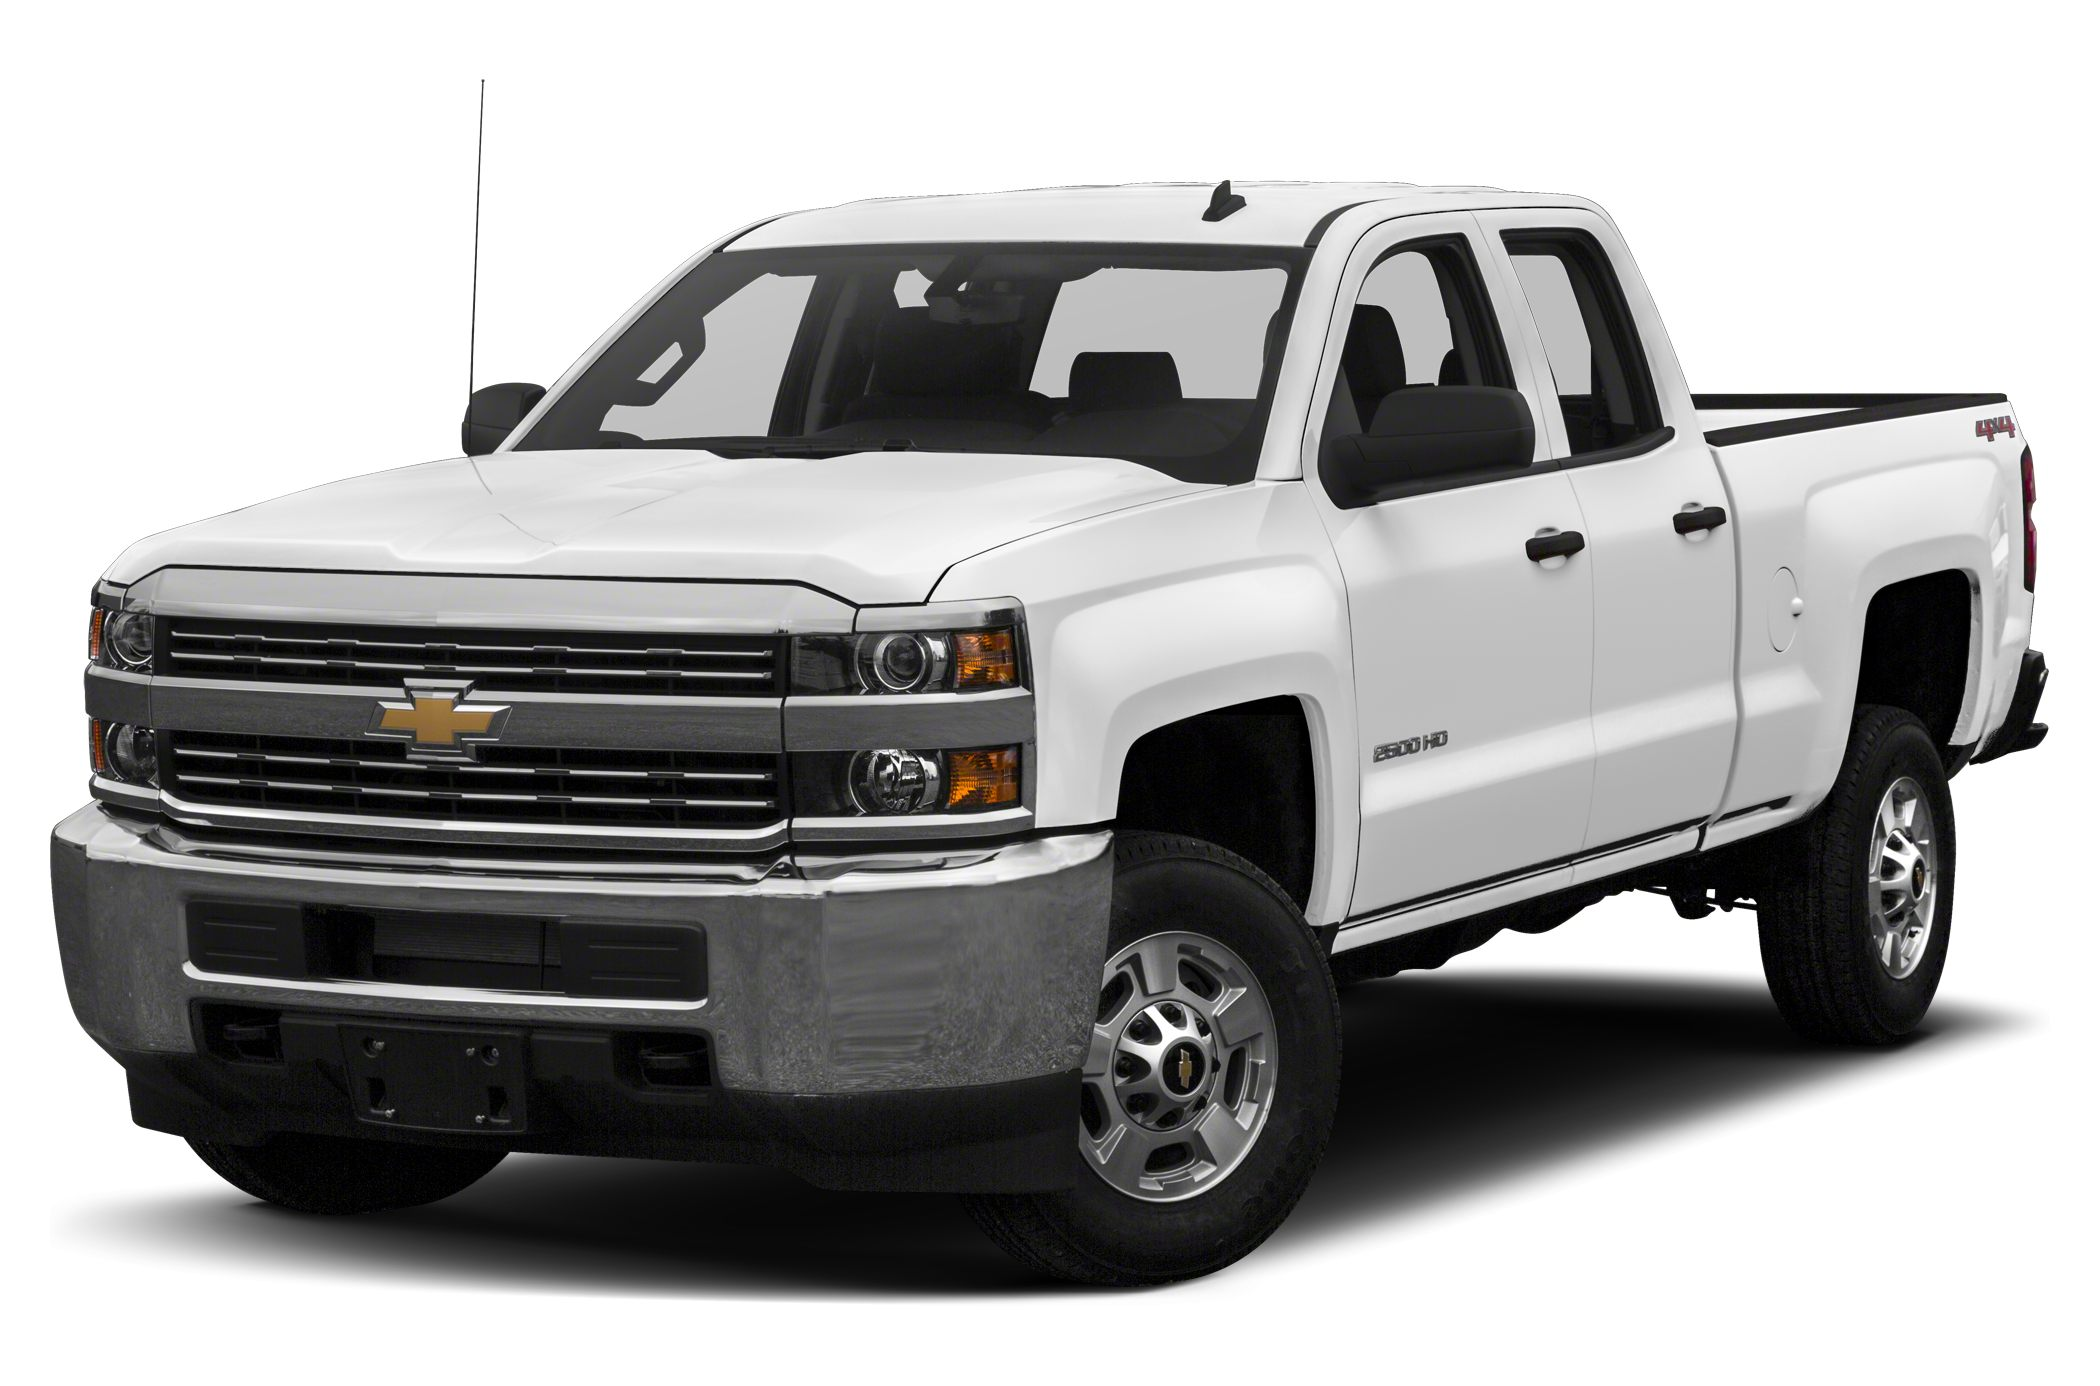 2015 Chevrolet Silverado 2500 LT Extended Cab Pickup for sale in Neosho for $46,225 with 1 miles